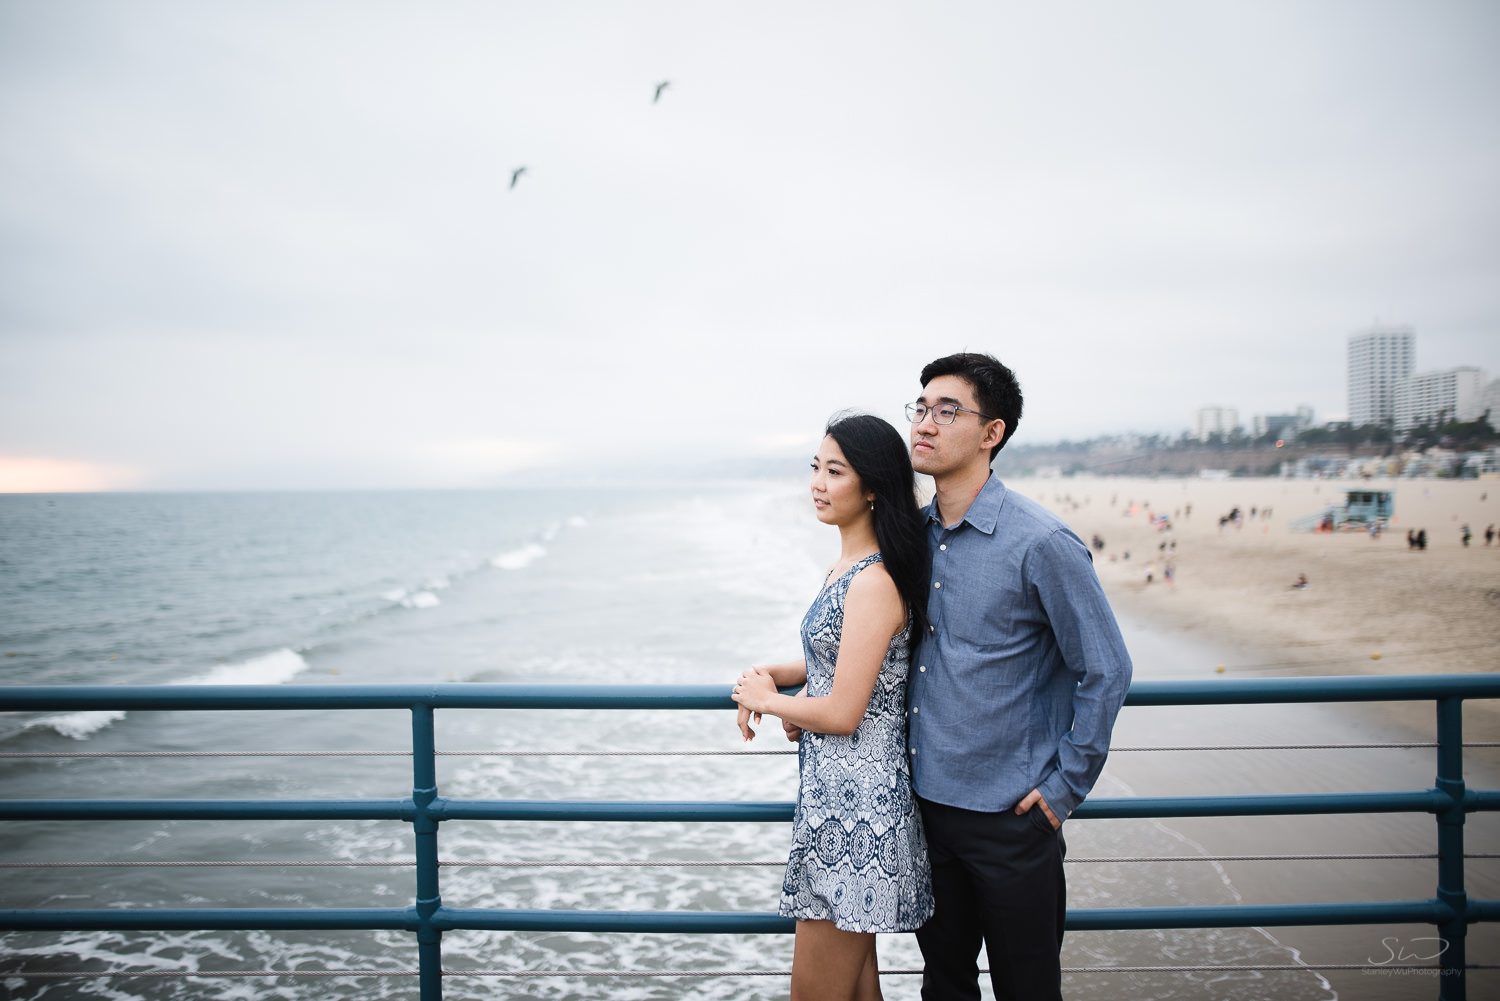 downtown-santa-monica-pier-and-beach-engagement-stanley-wu-photography-los-angeles-portrait-and-wedding-photographer-48.jpg